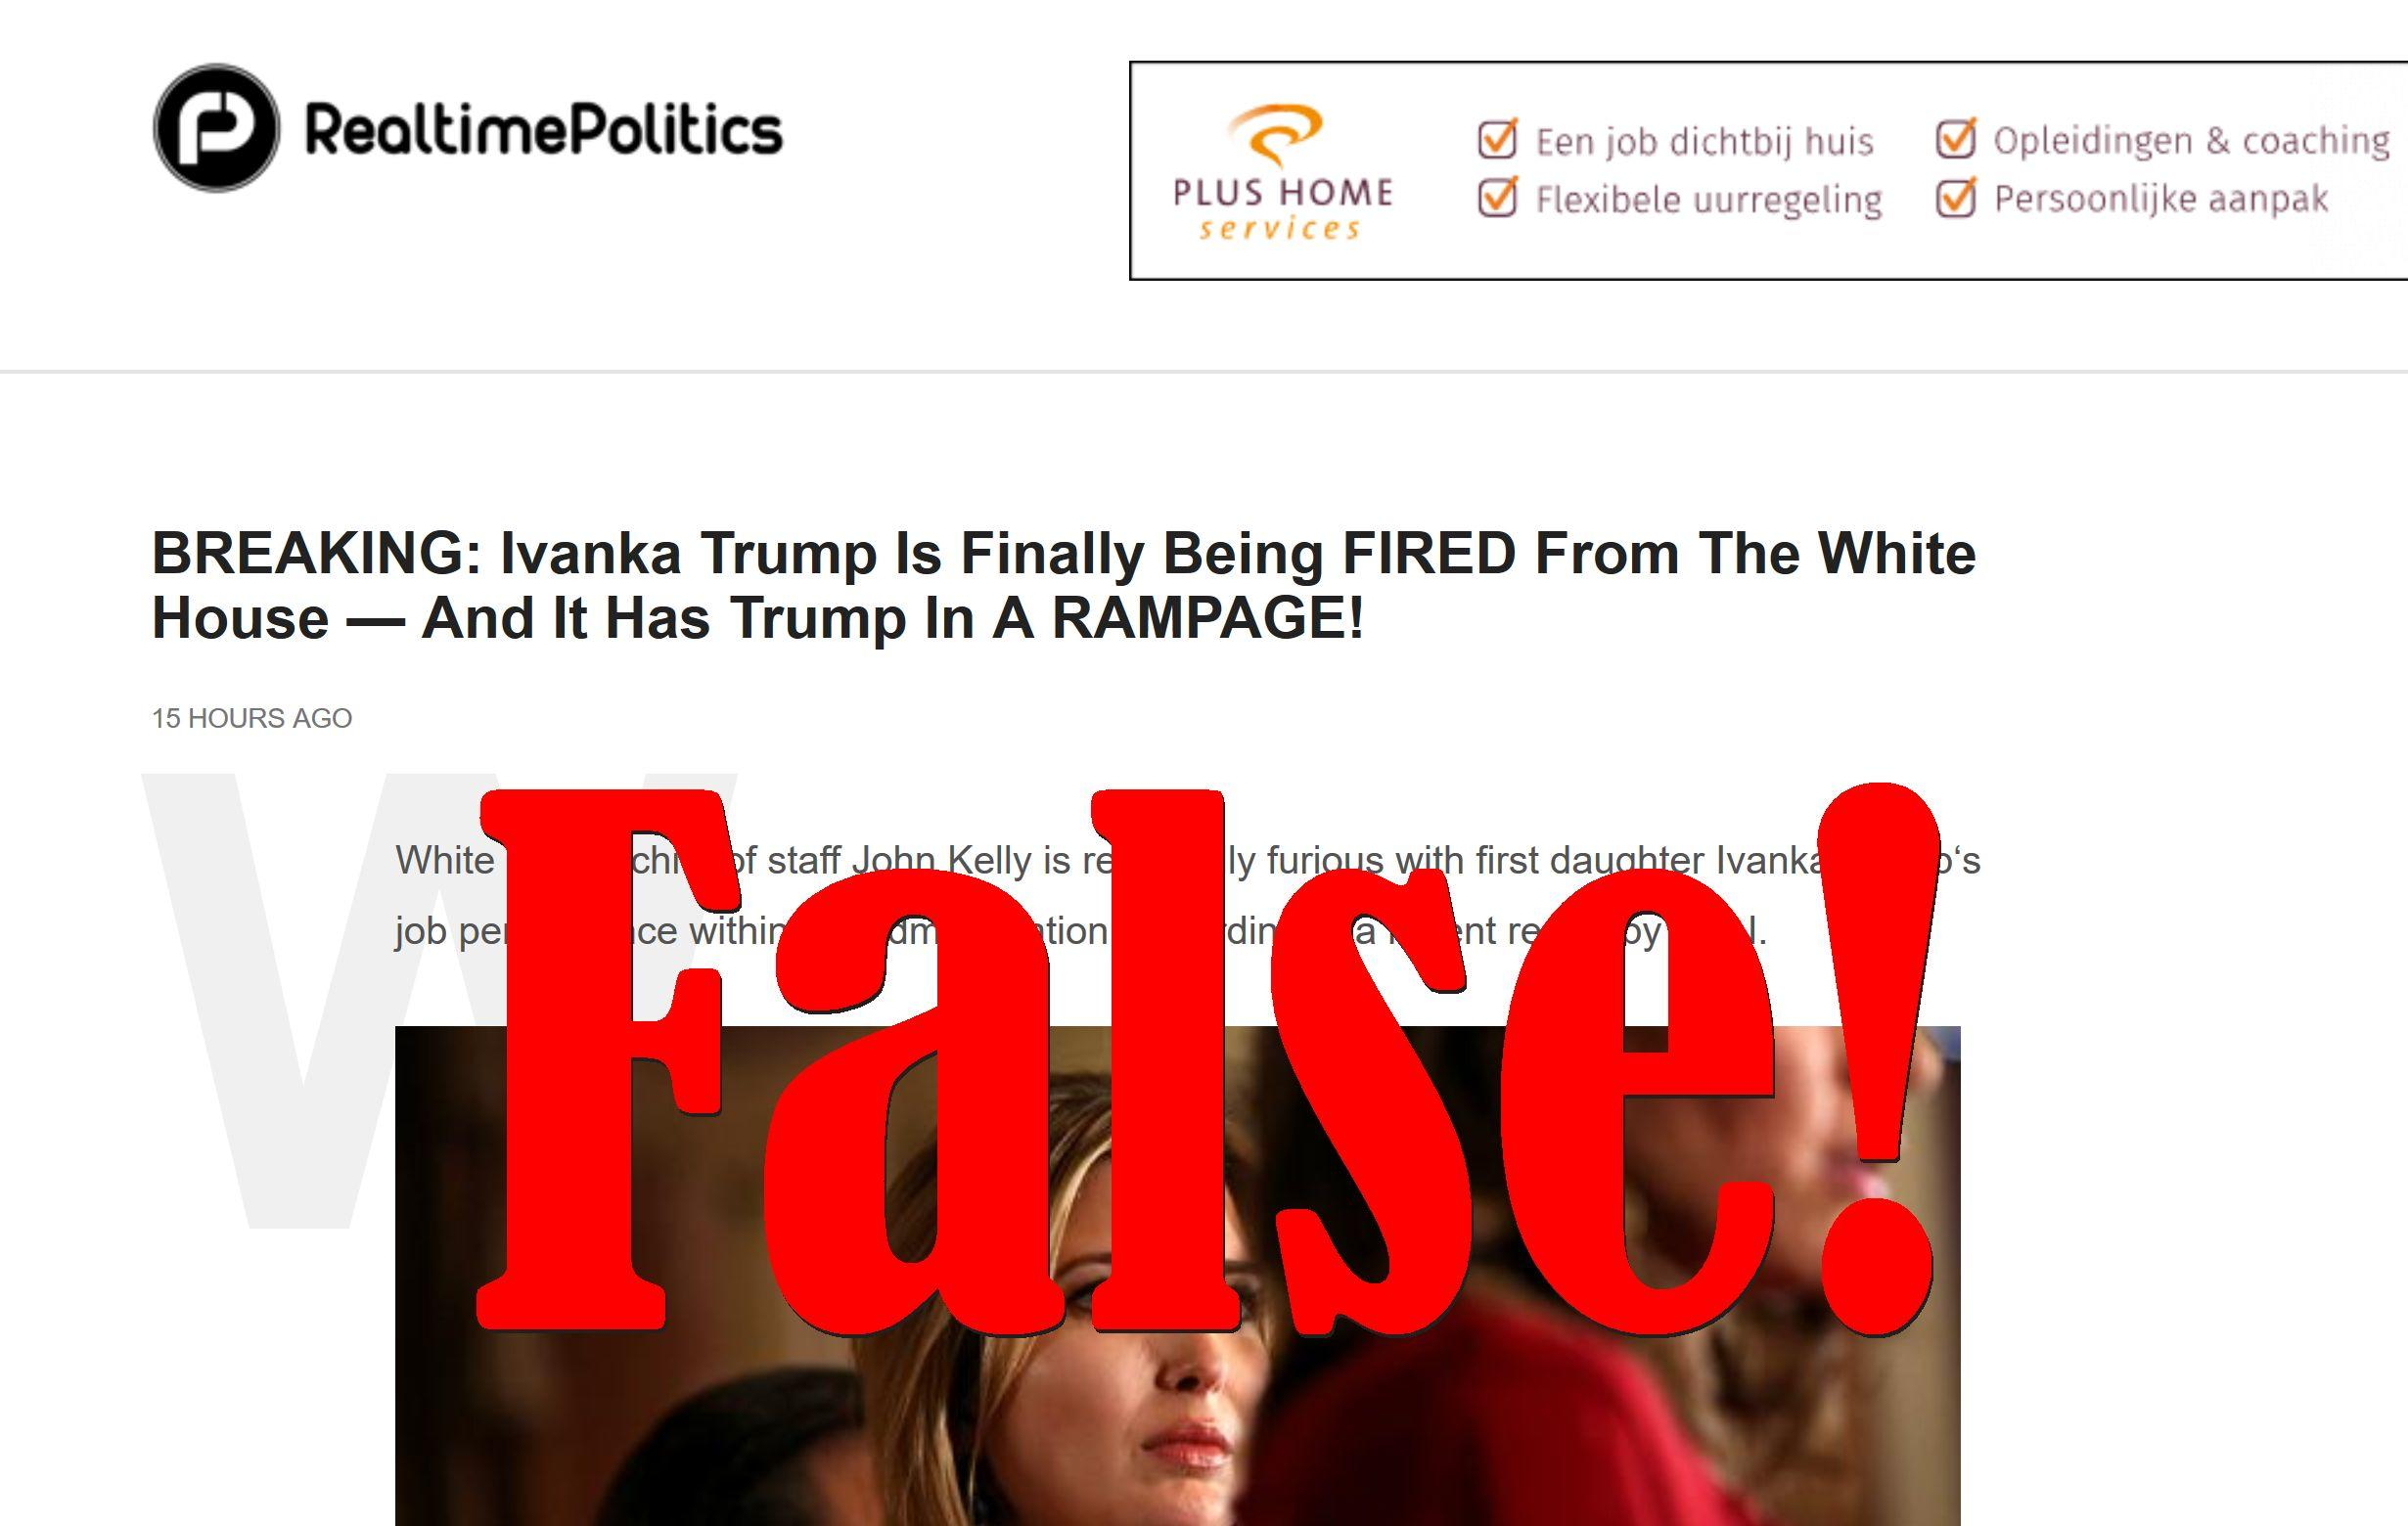 Fake News: Ivanka Trump Is NOT Being Fired From The White House